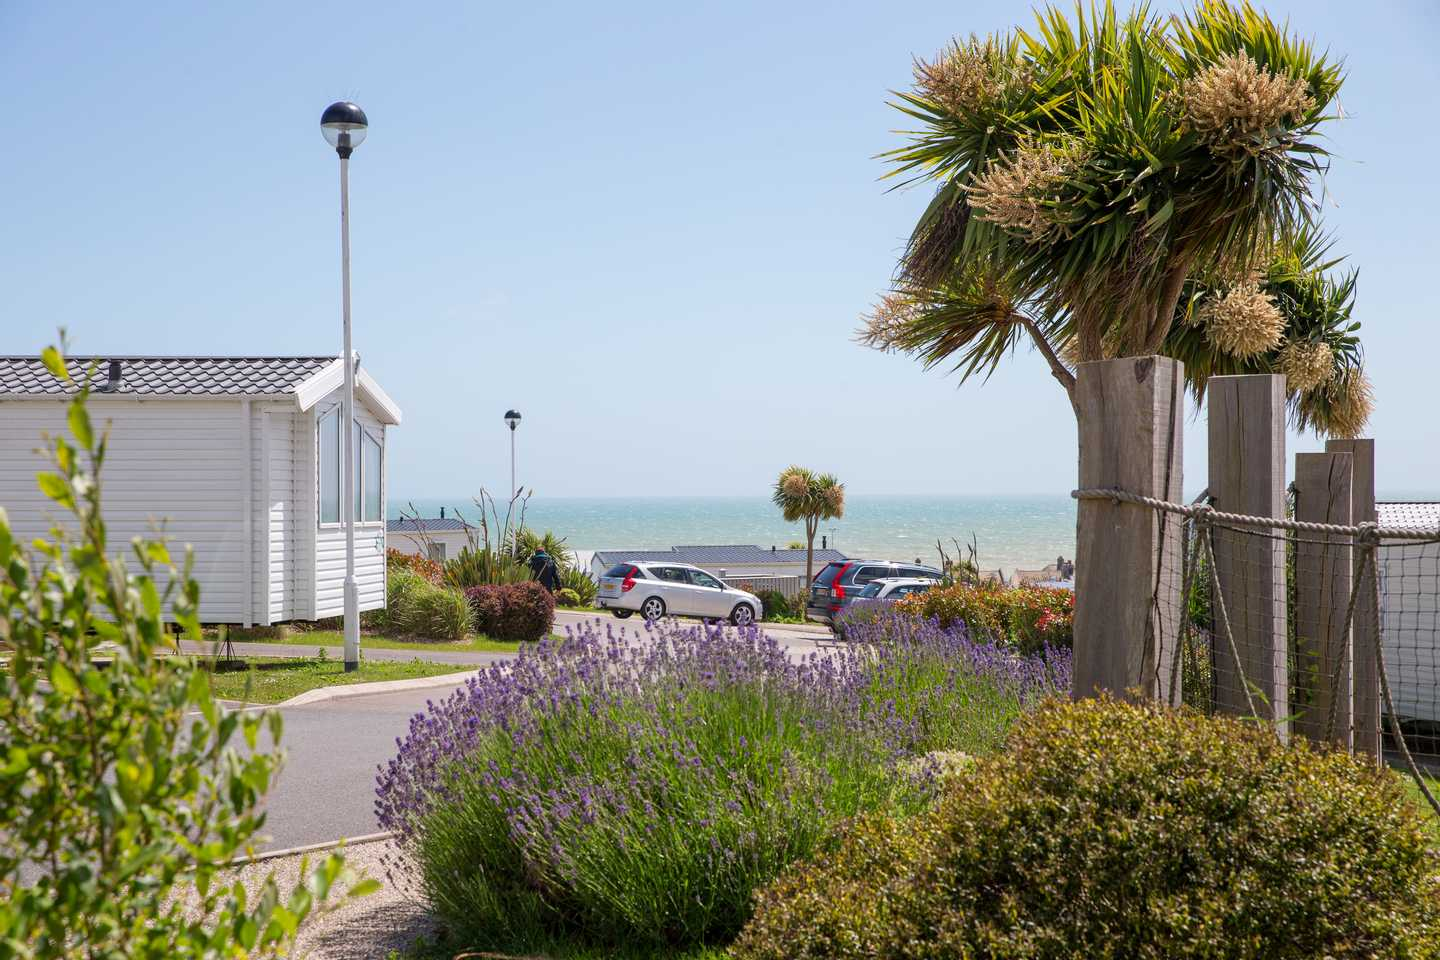 A sea view from a landscaped area of the Sea View Village at Combe Haven Holiday Park with lavender bushes and a palm tree